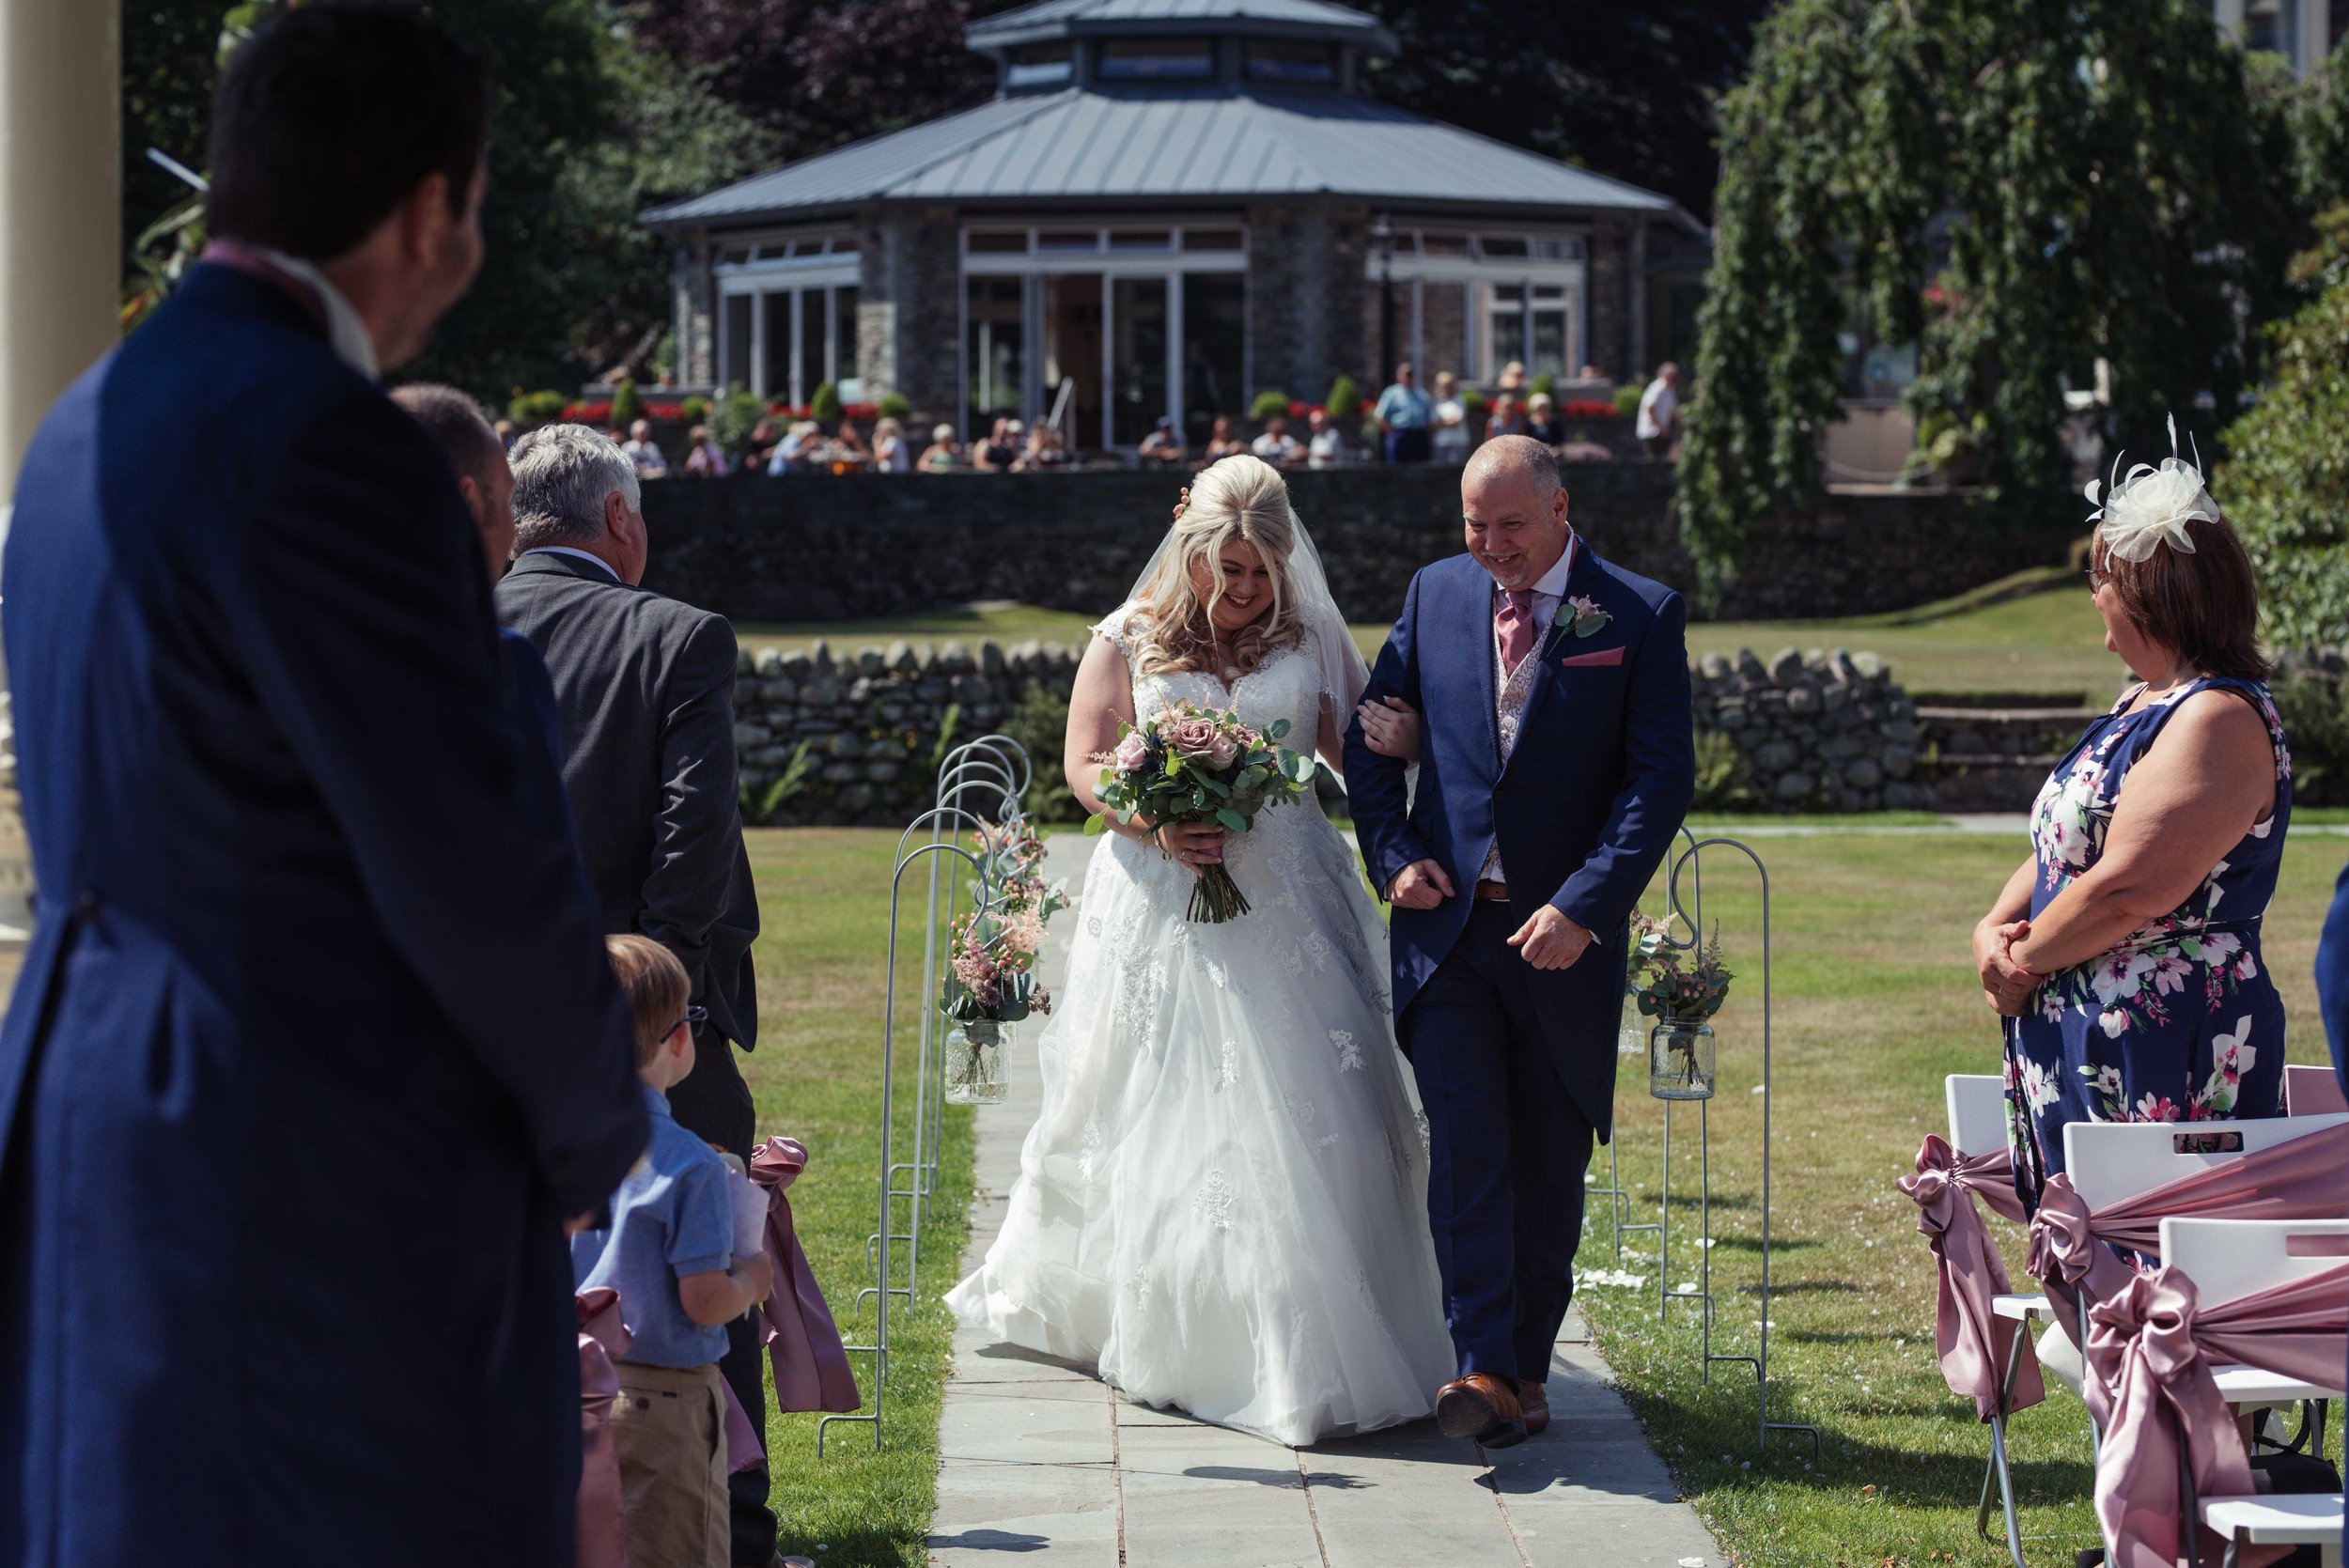 The brides father escorts his daughter down the aisle at the Inn on the Lake